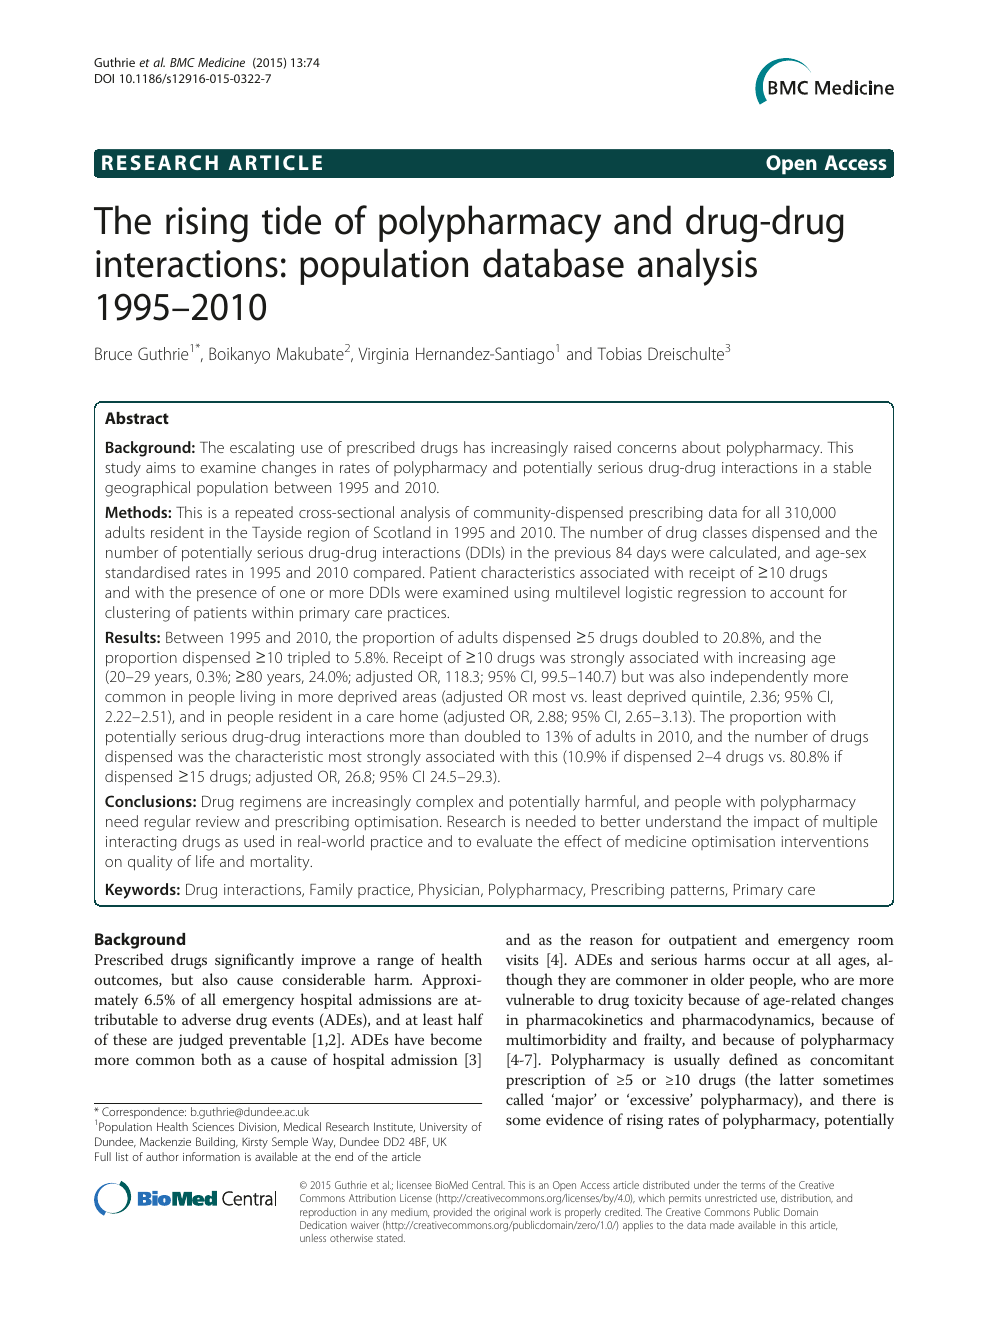 The rising tide of polypharmacy and drug-drug interactions